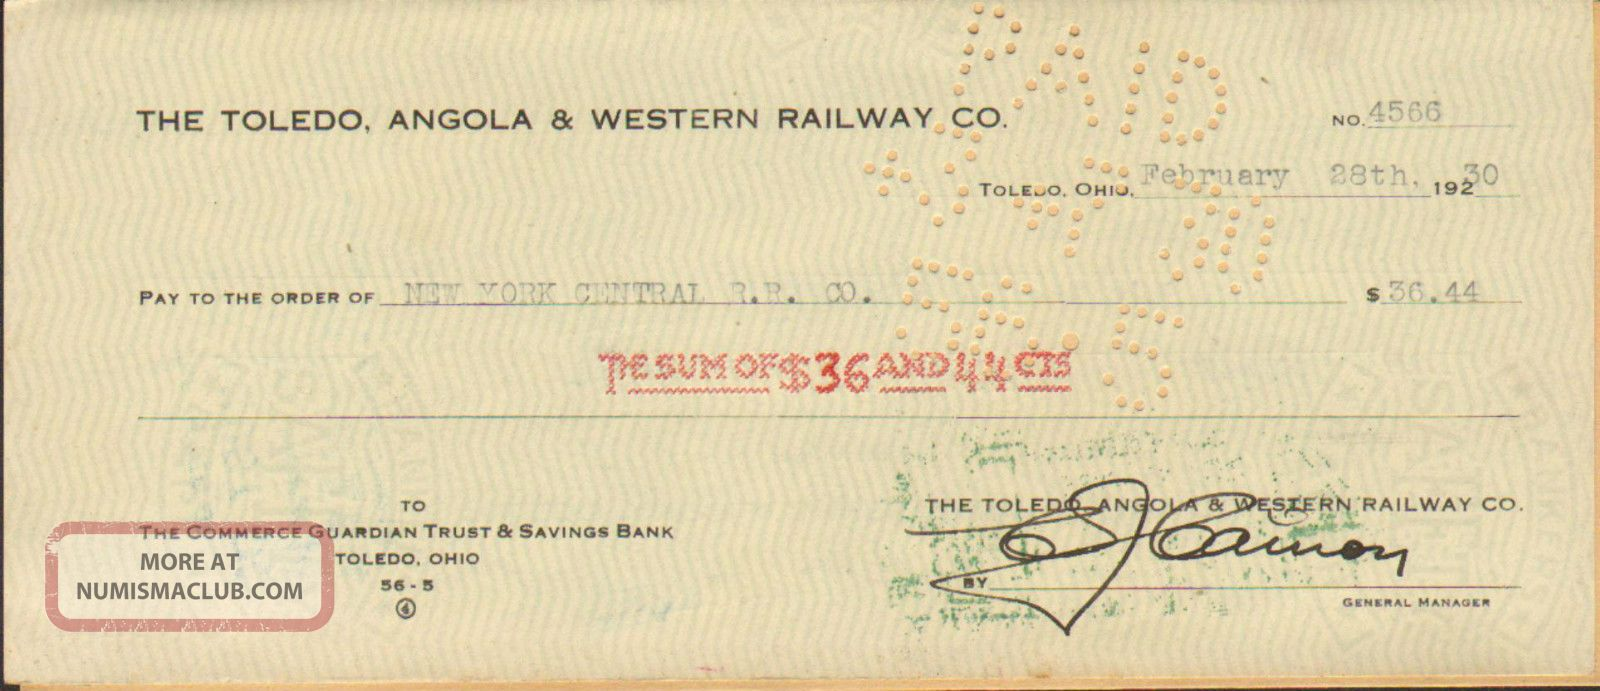 Toledo Angola & Western Railway Pay York Central Rail Road Bank Check 1930 Transportation photo